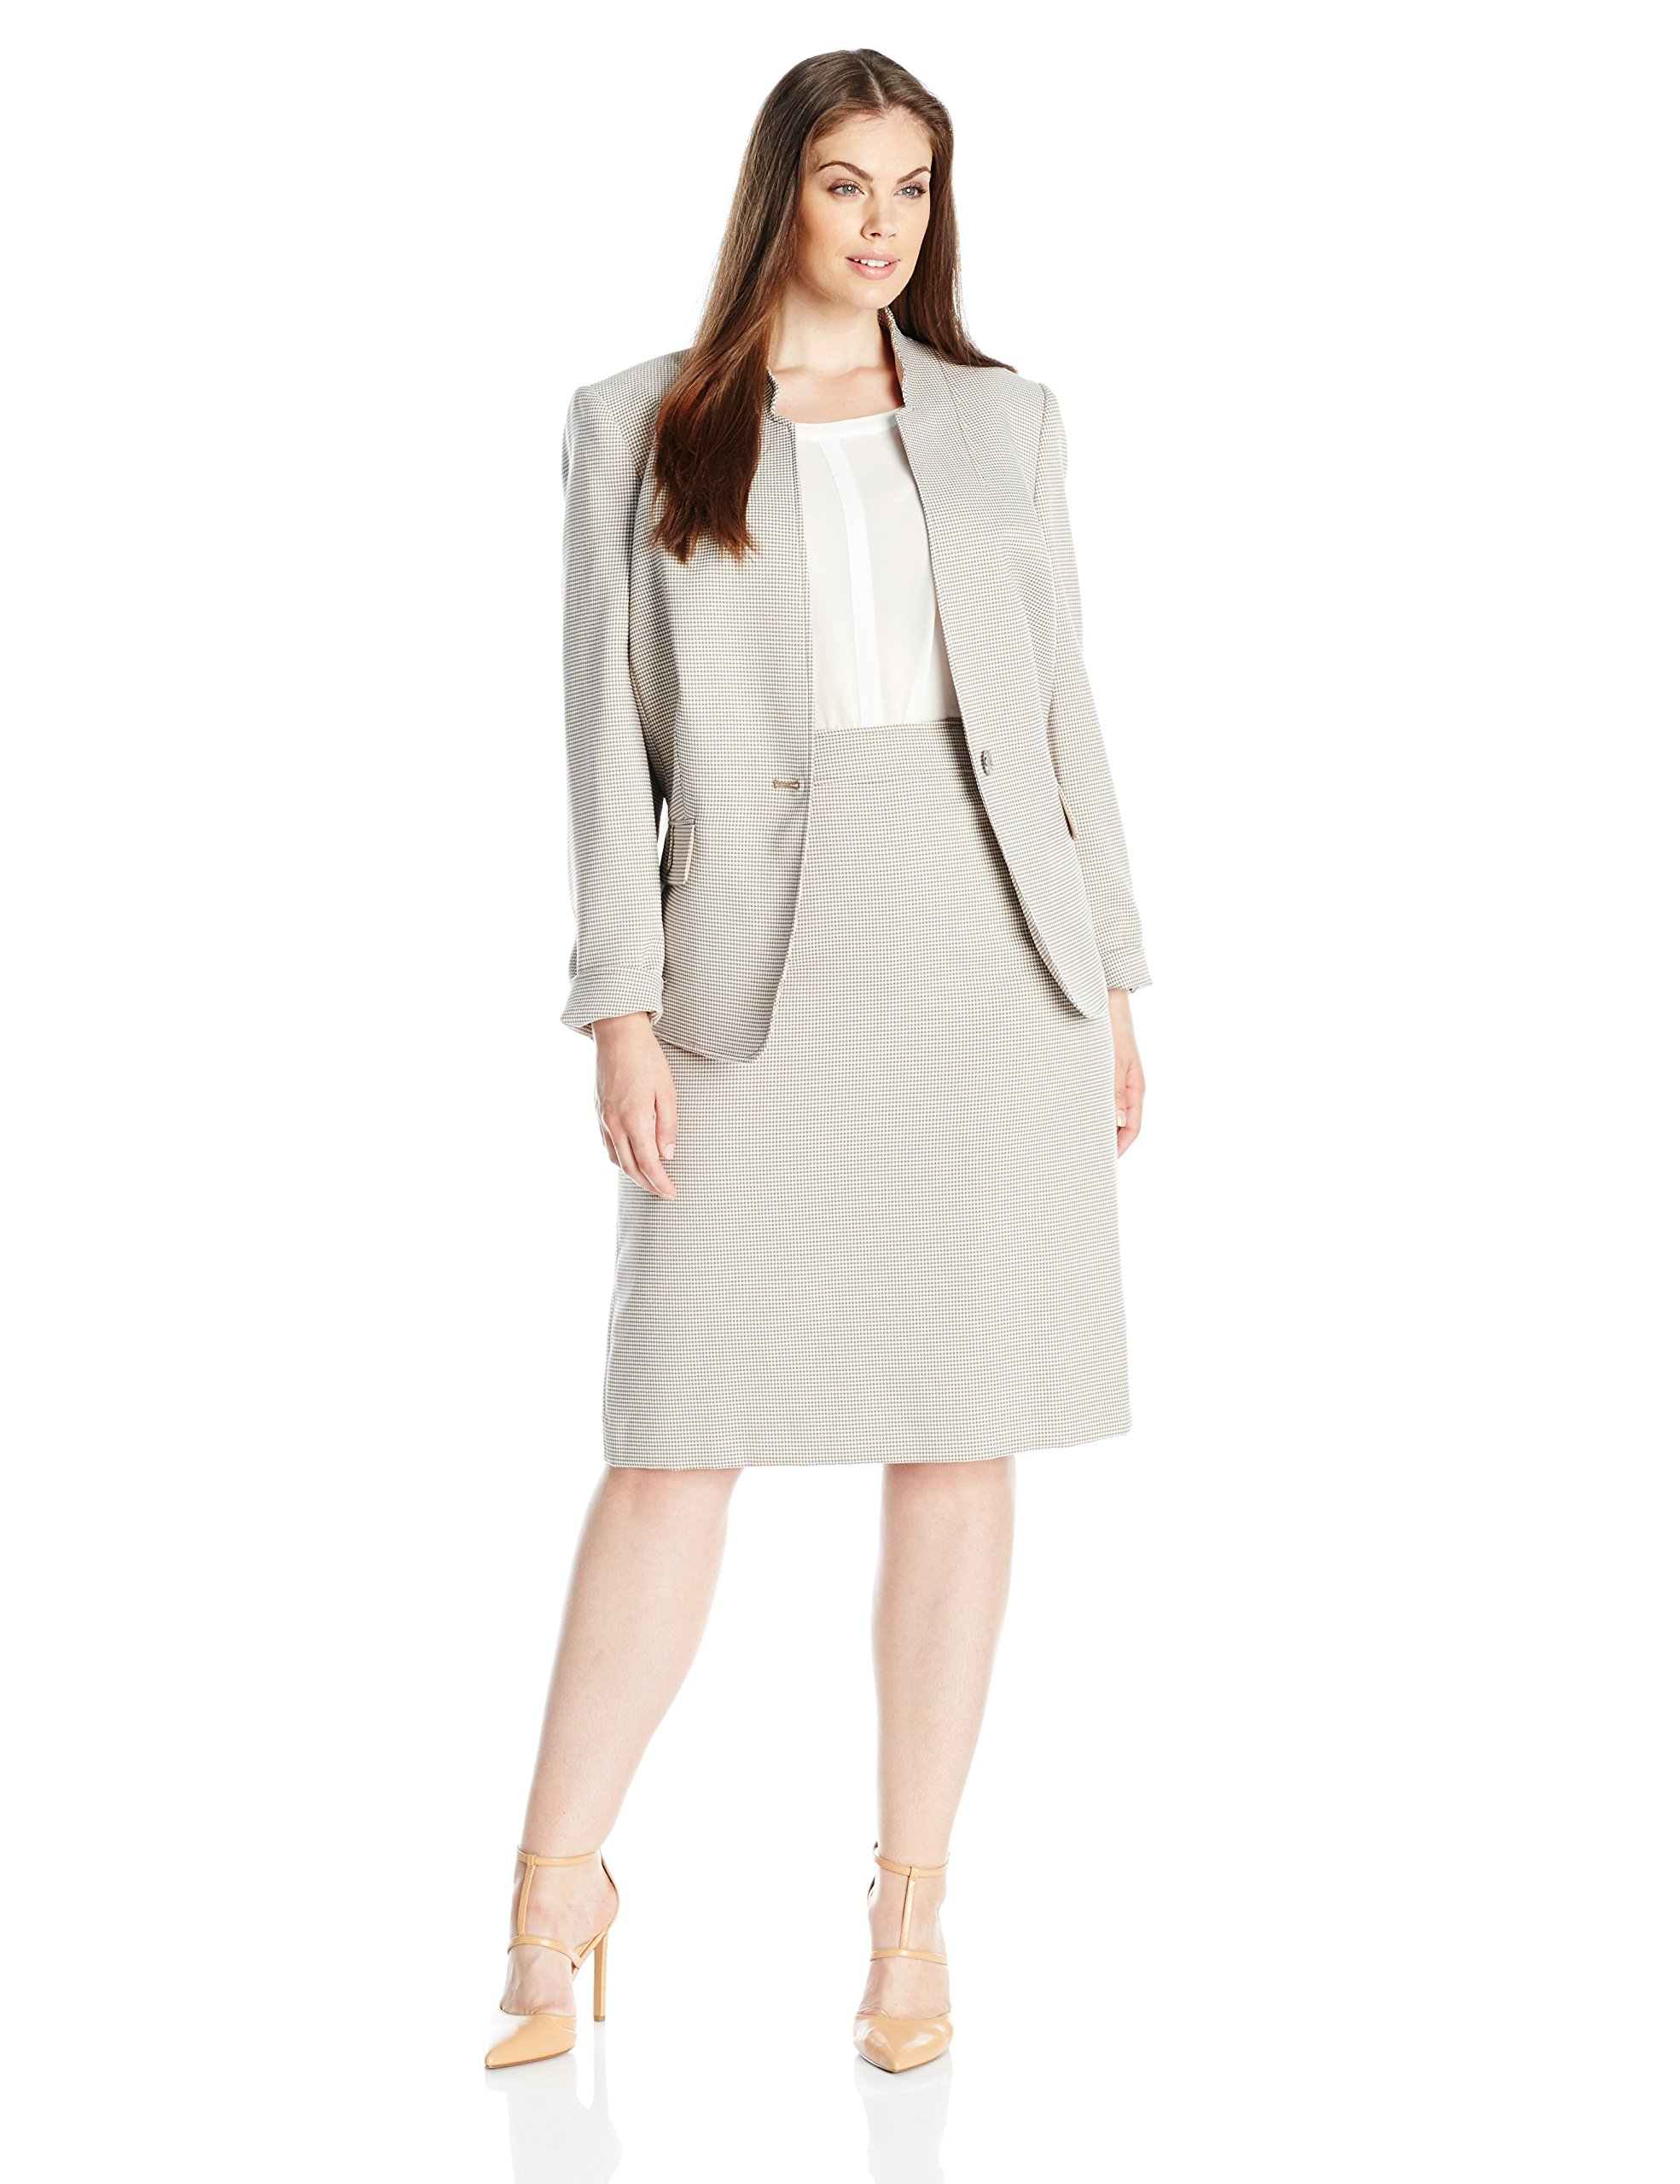 Tahari by Arthur S. Levine Women's Plus-Size Tahari Asl Houndstooth Skirt Suit, Beige/White, 22W by Tahari by Arthur S. Levine